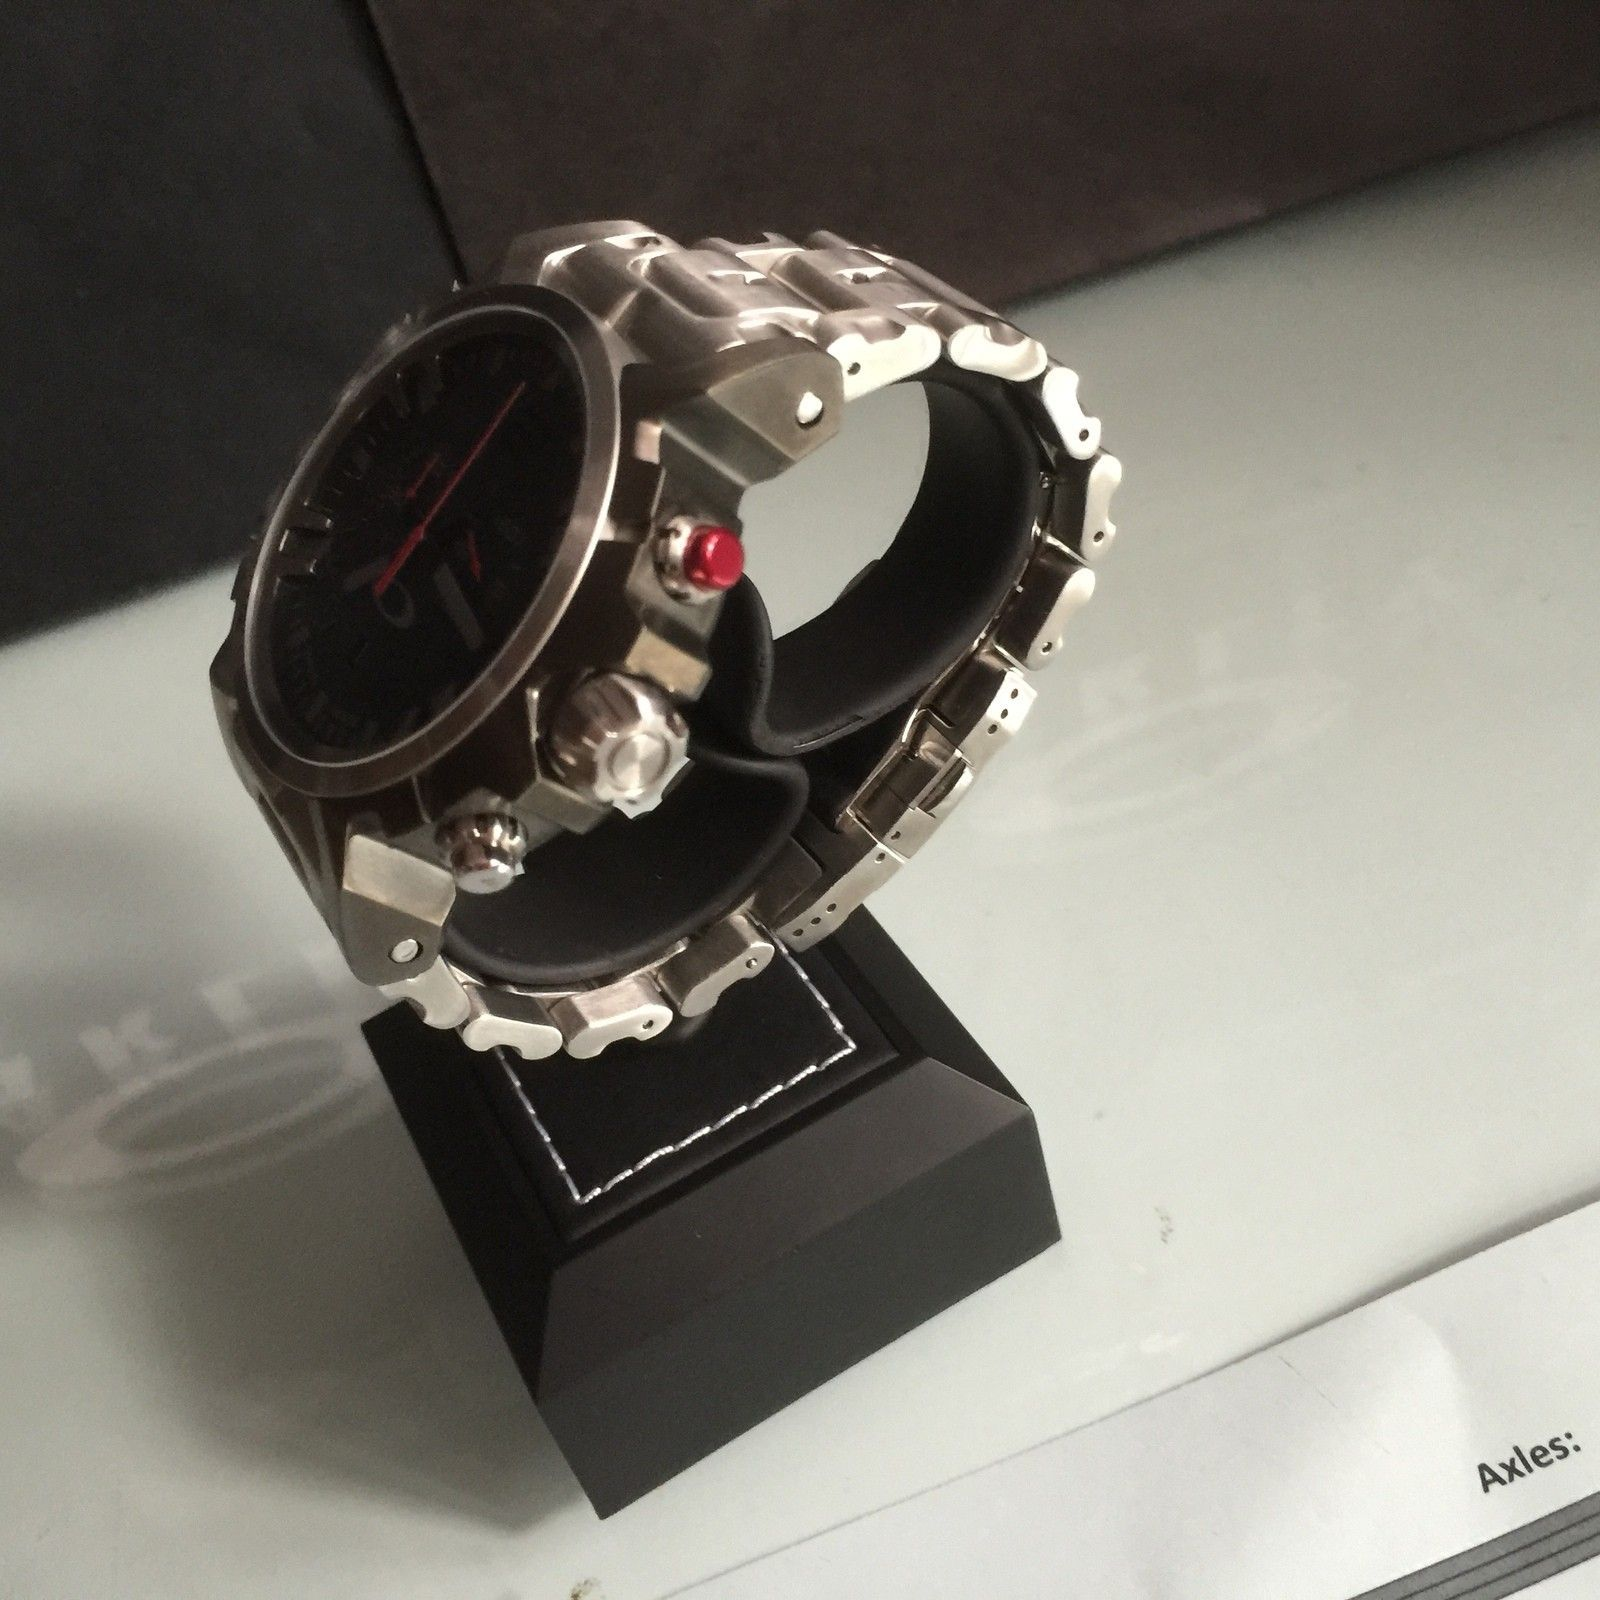 Are there different sizes of the top part of this watch stand? - IMG_0136.JPG